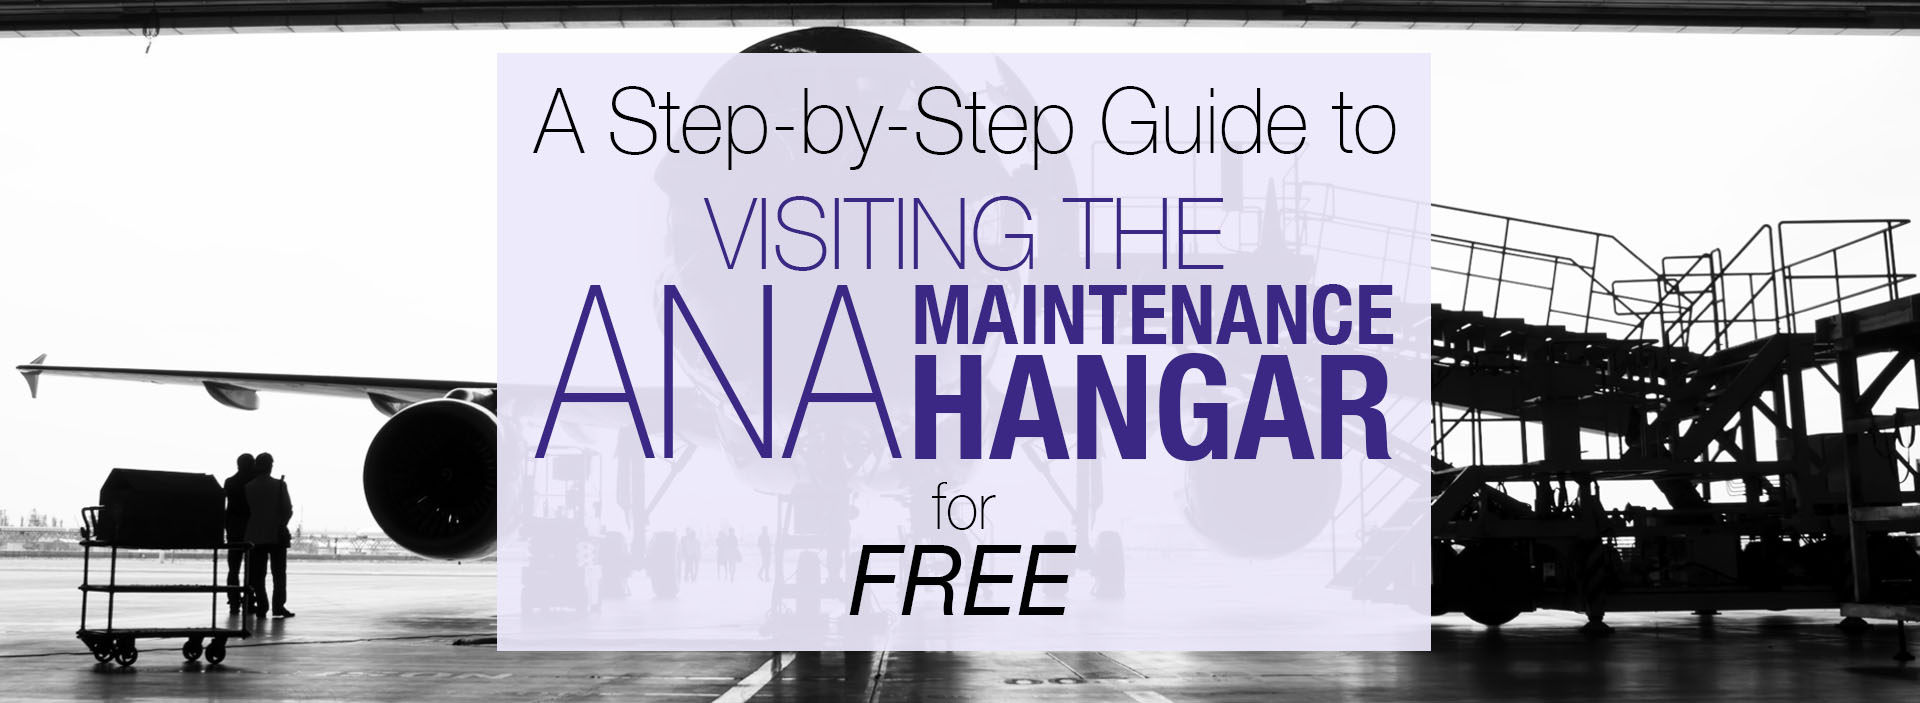 A Step-by-Step Guide to Visiting the ANA Maintenance Hangar for Free